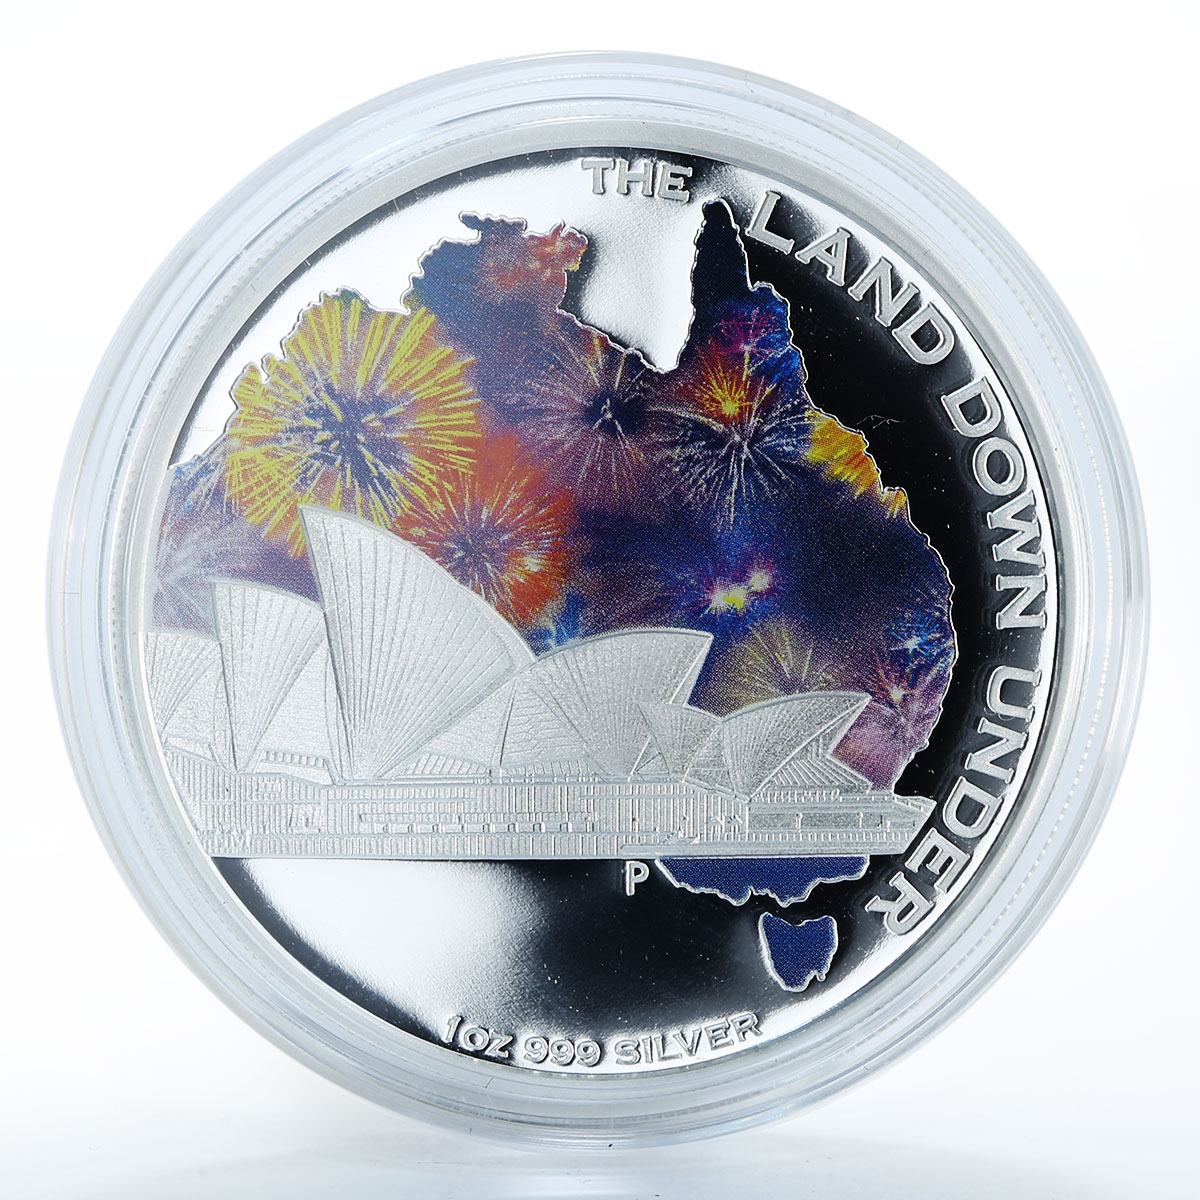 Australia 1 dollar Syndey Opera House art symphony silver coin 2013